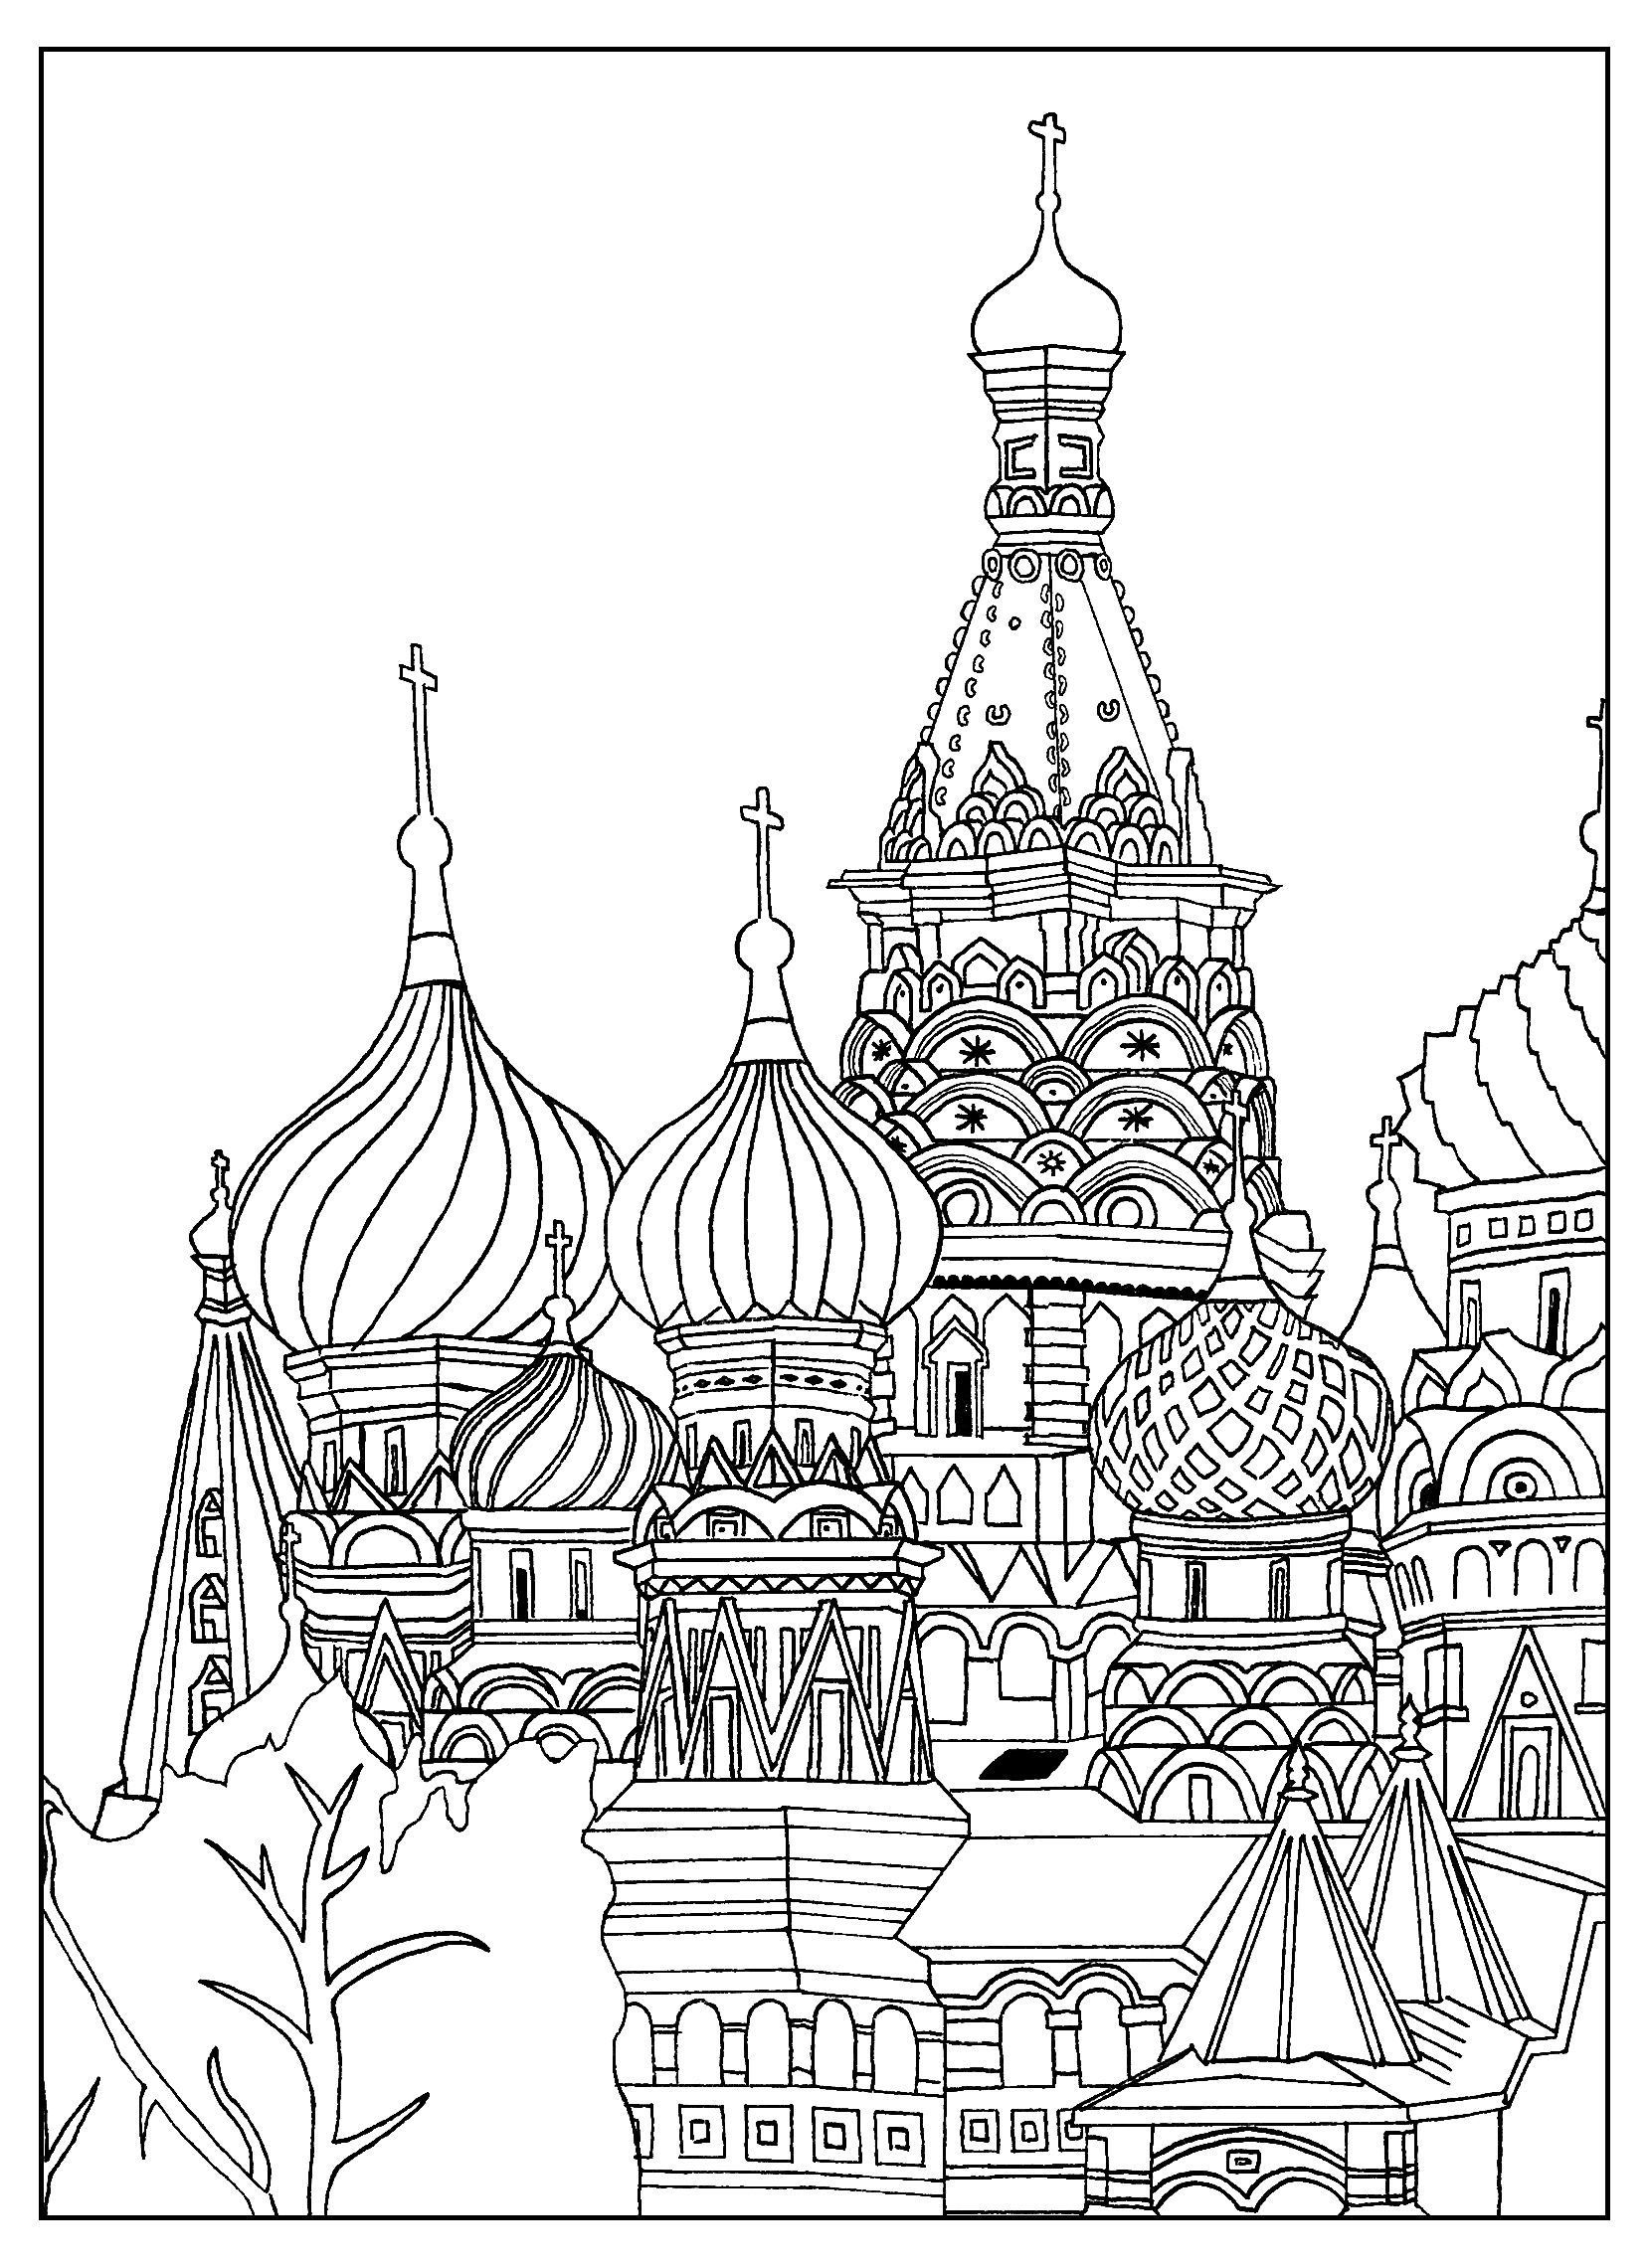 1659x2281 Free Adult Coloring Page Of The Saint Basil's Cathedral, In Red